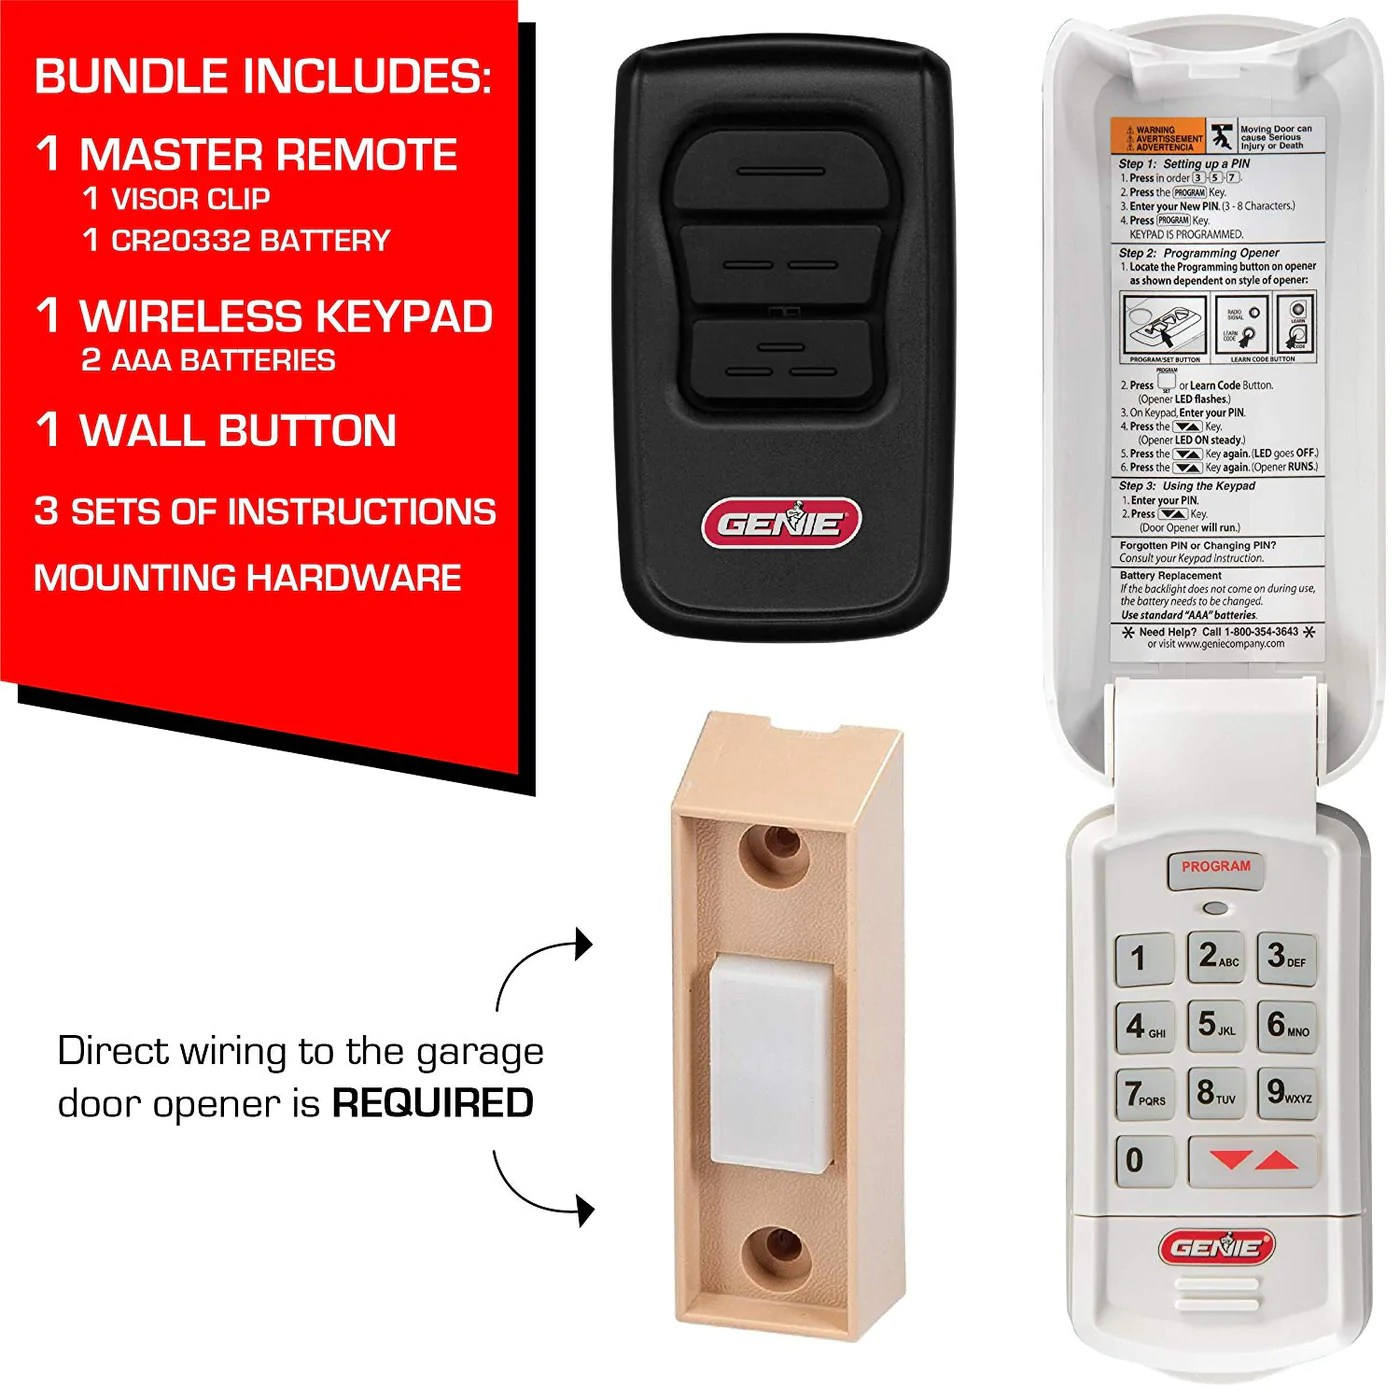 small resolution of  genies accessories bundle for garage door openers come with diy detailed illustrated programming instructions genie s